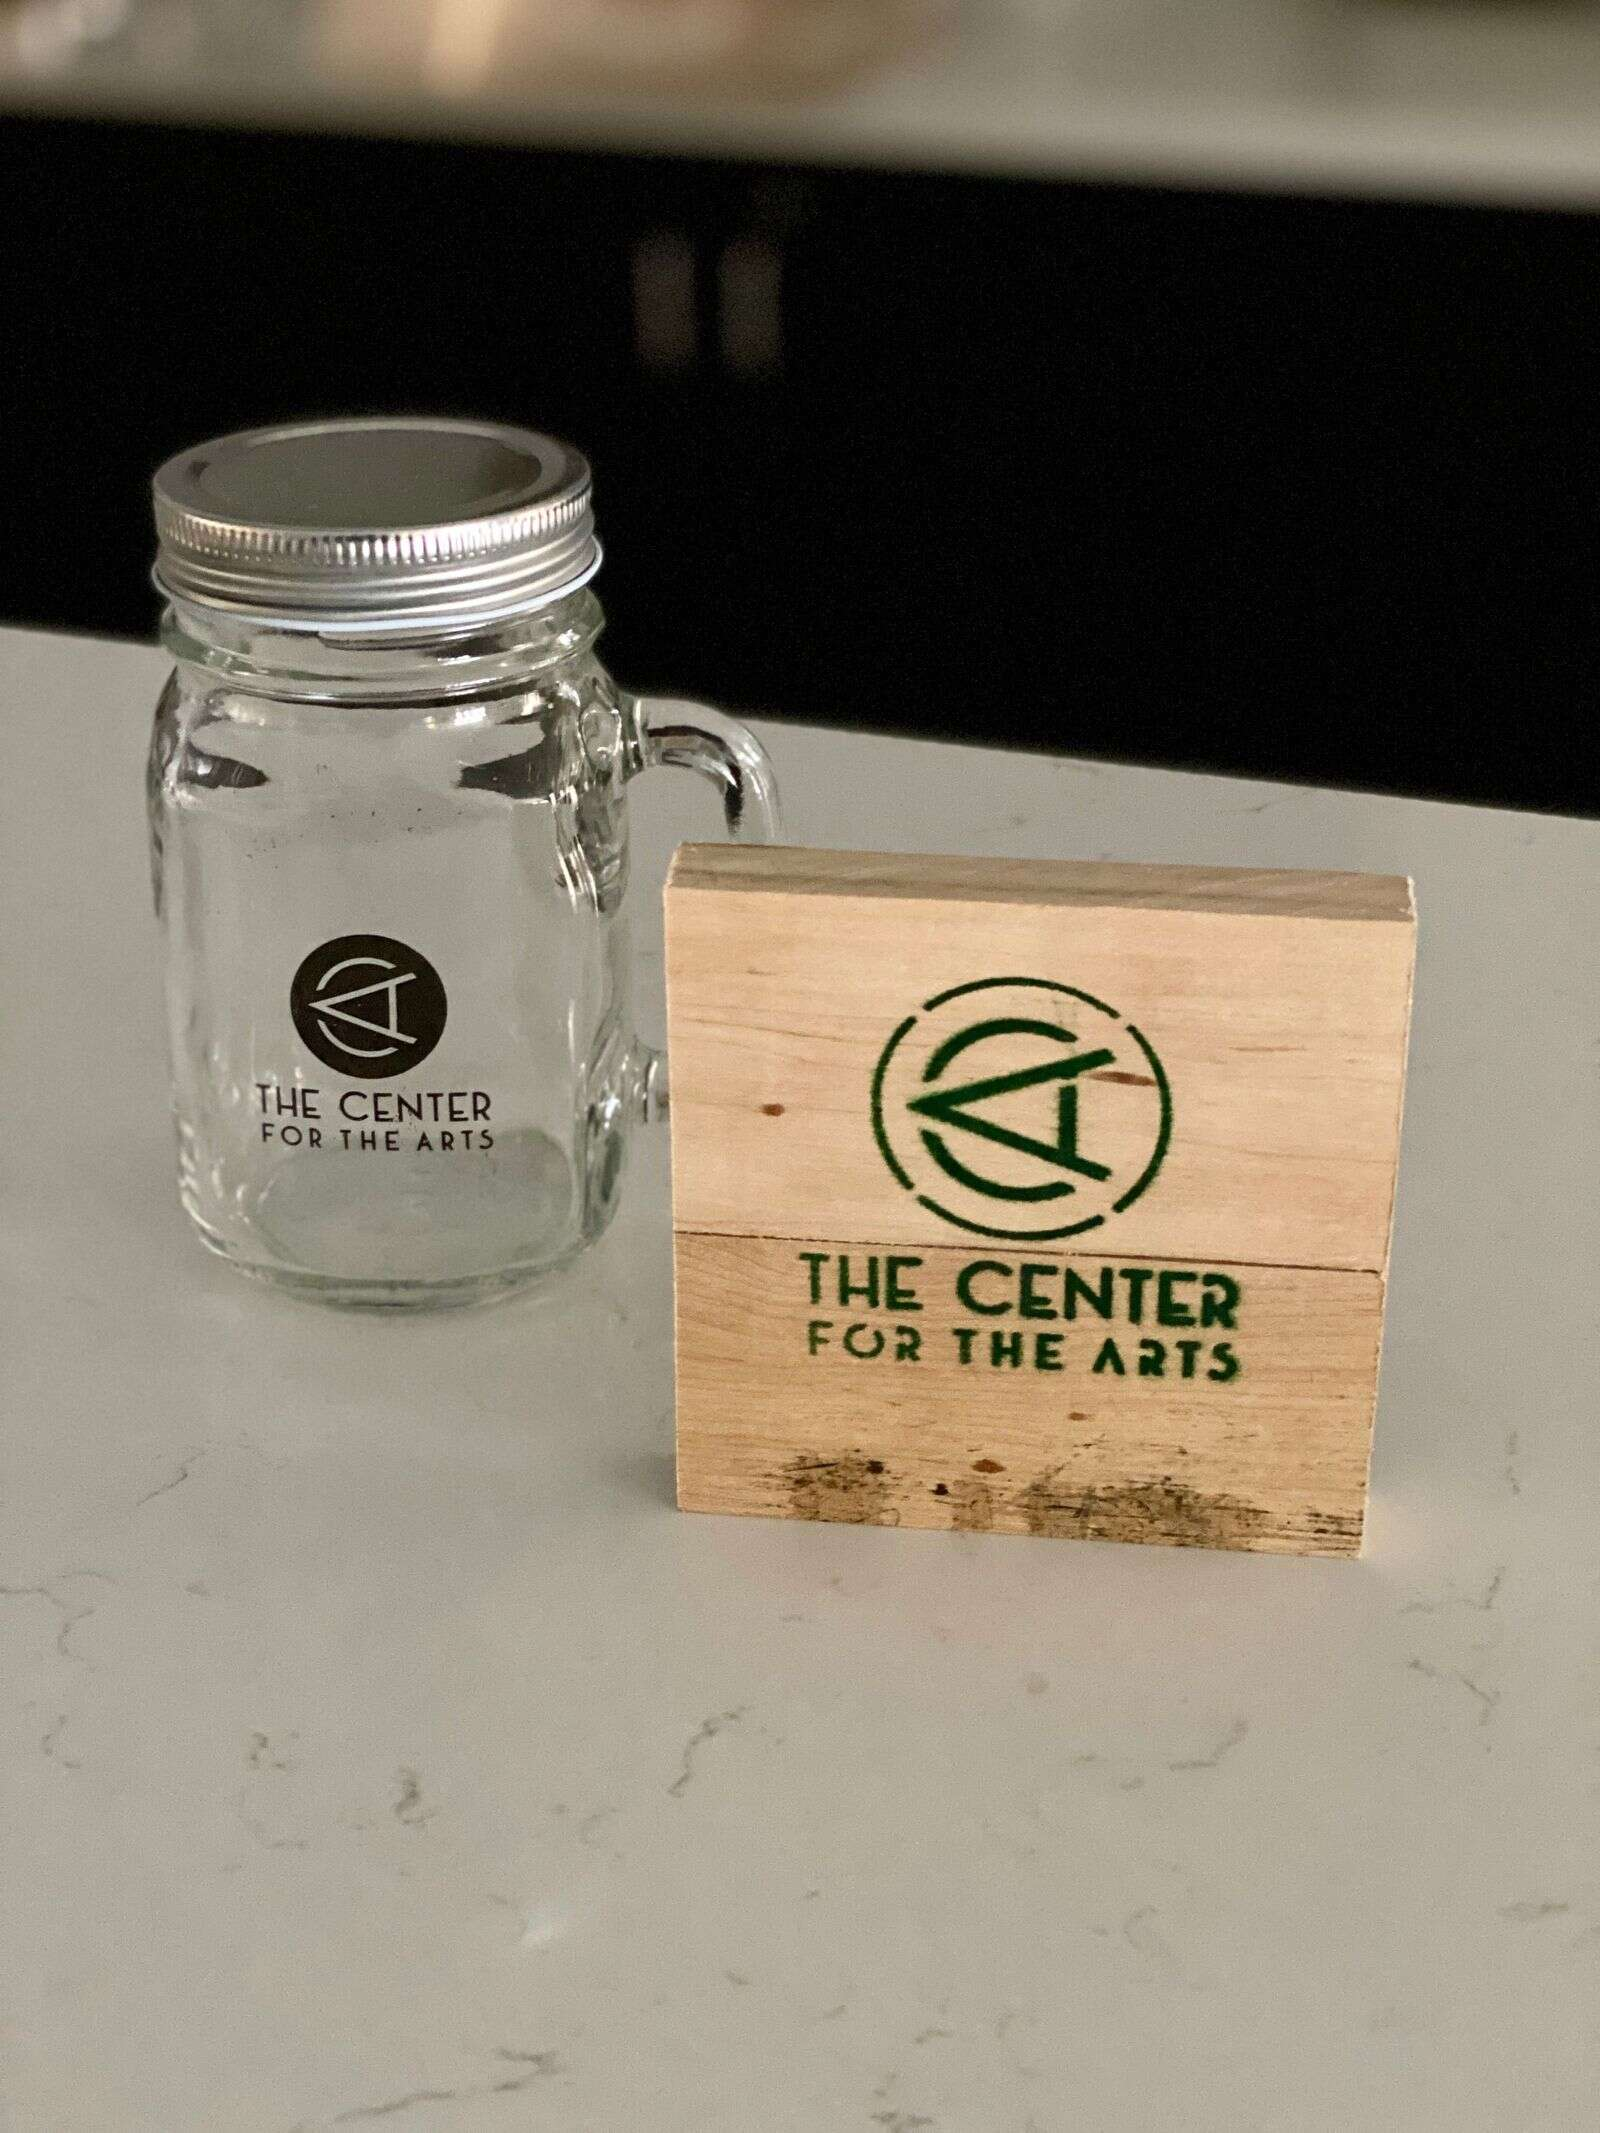 Various incentives encourage community members to become members at The Center.